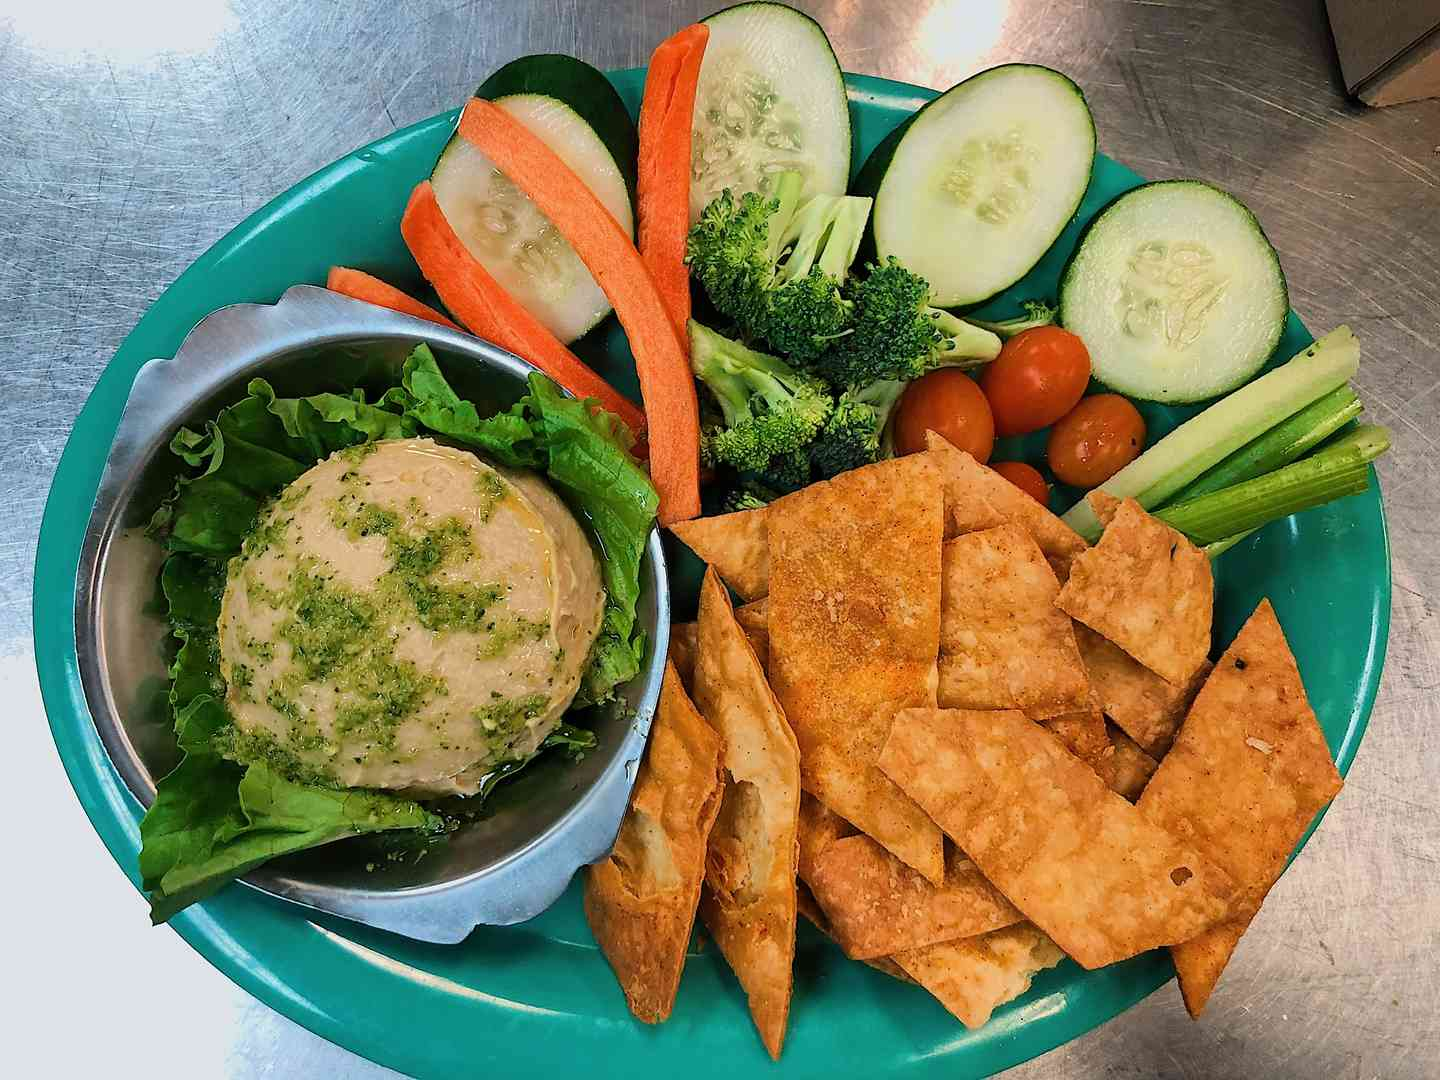 Homemade Hummus Plate with Chips & Veggies